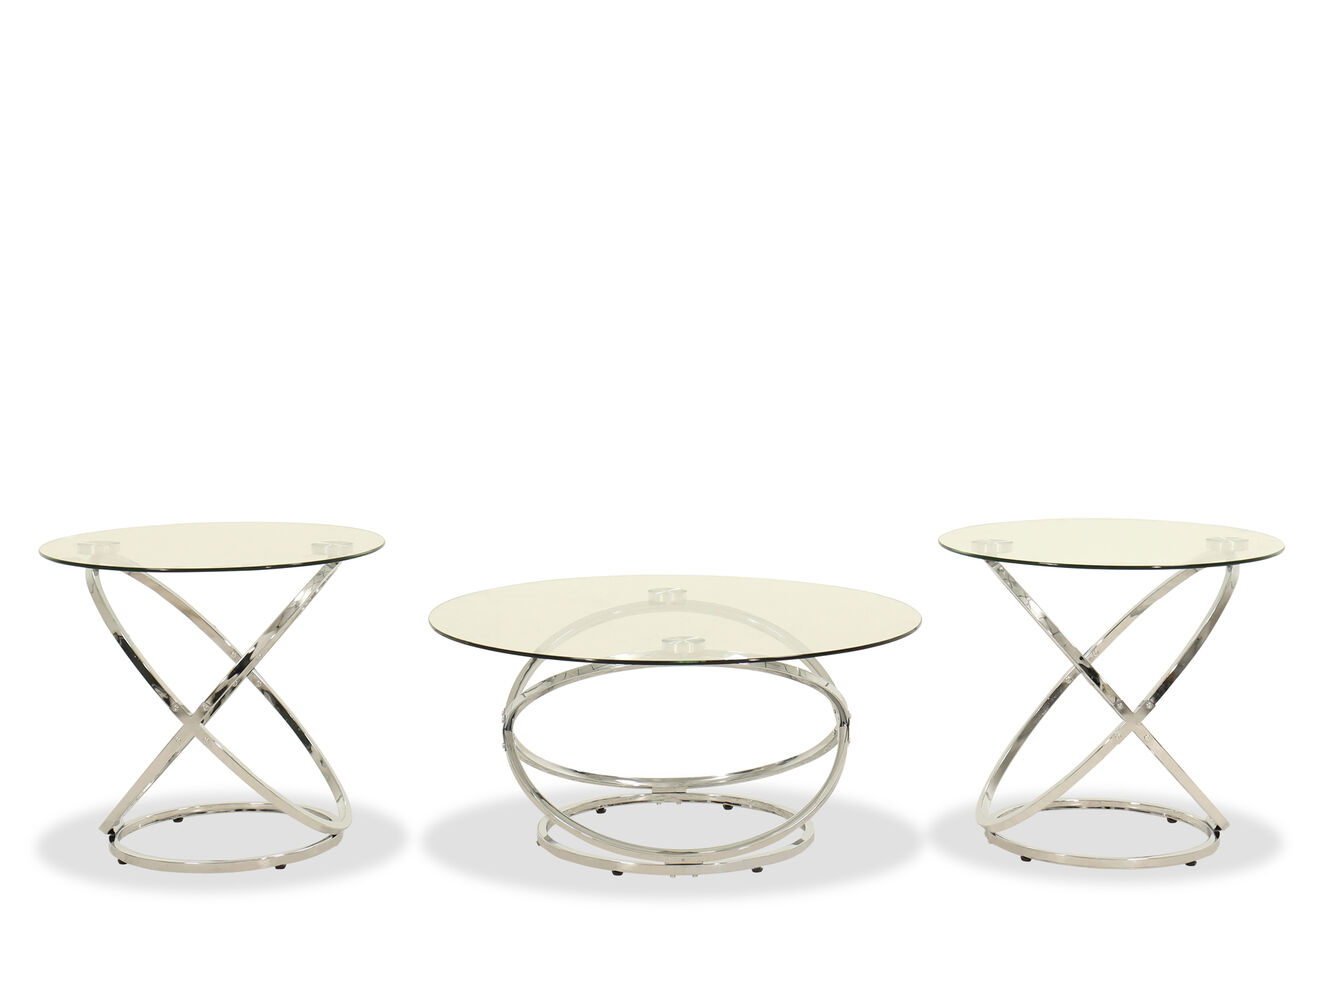 Three-Piece Contemporary Occasional Table Set in Chrome | Mathis ...